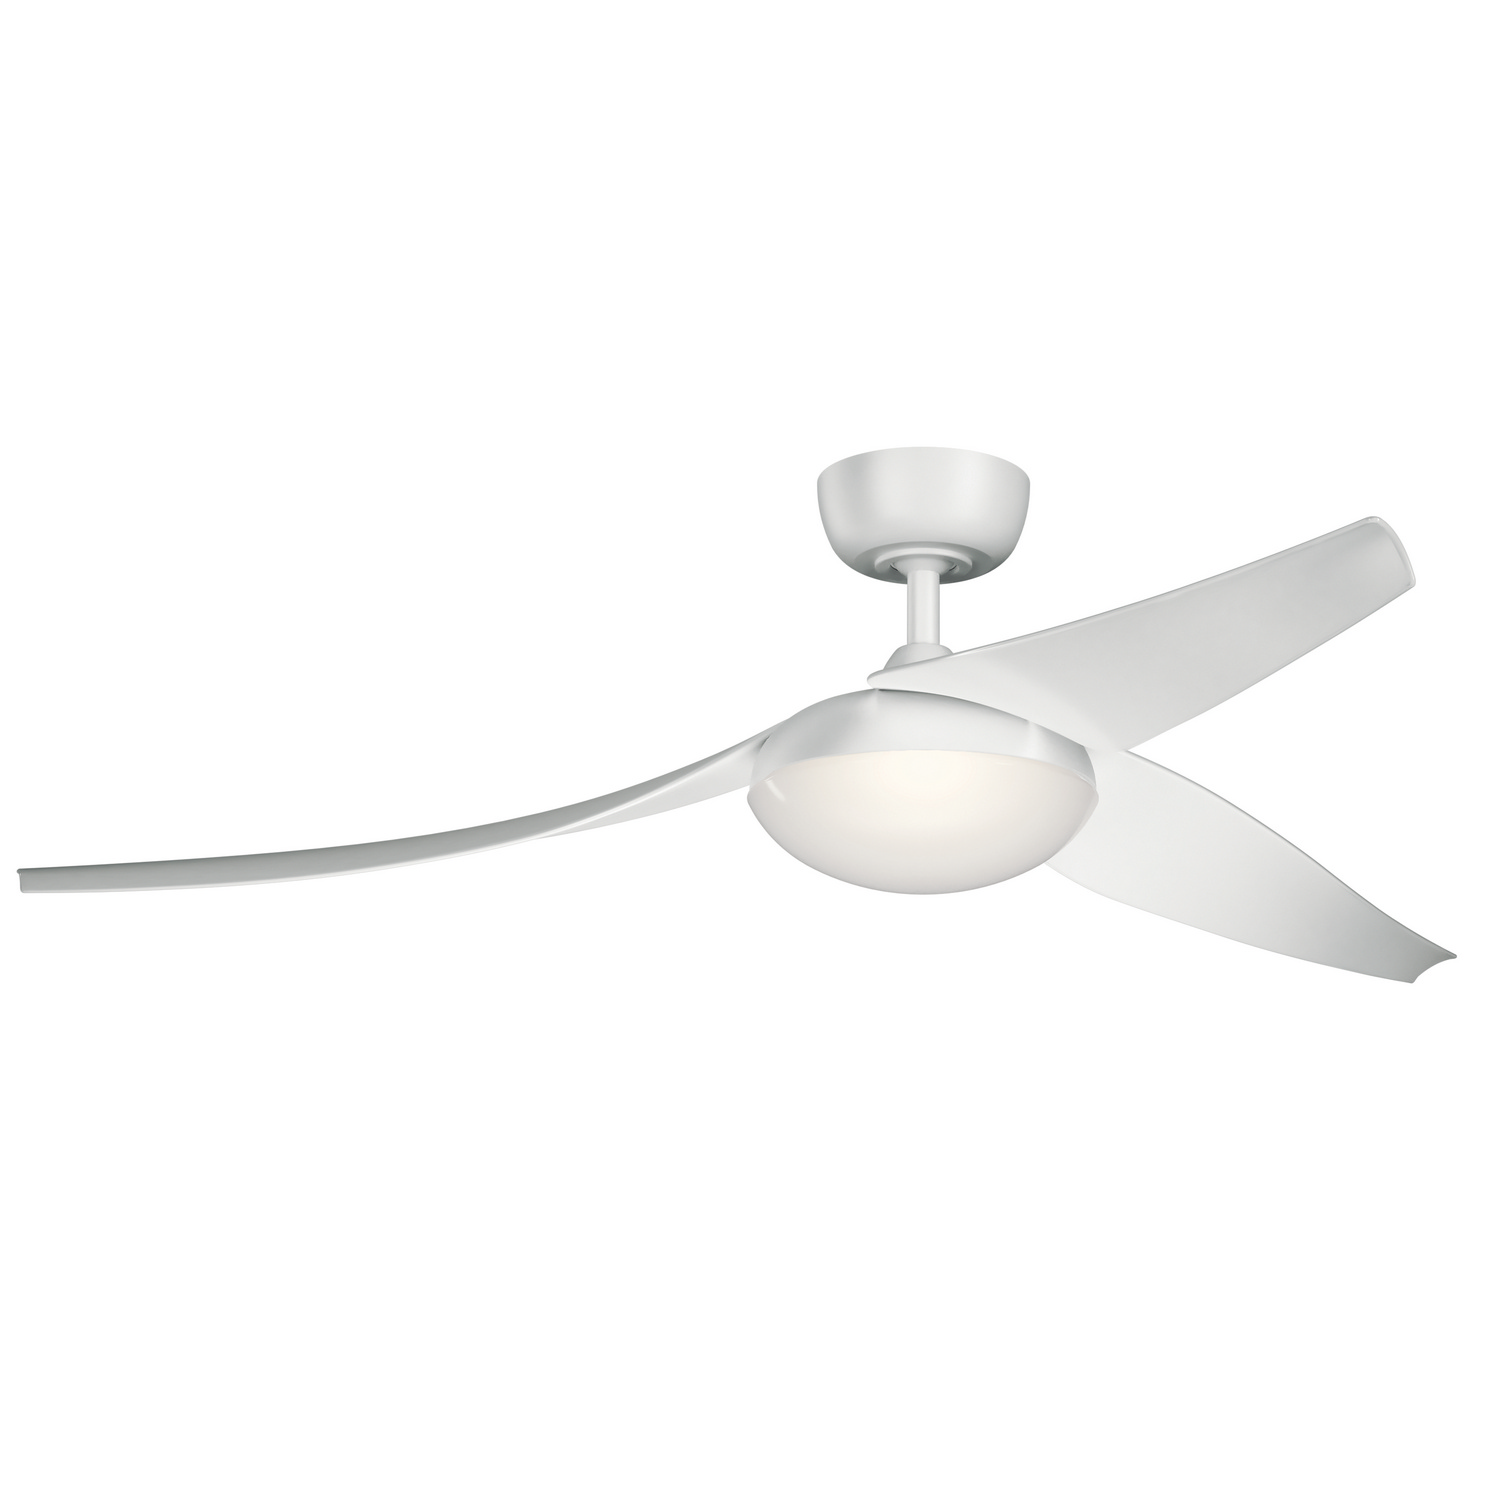 60 inchCeiling Fan from the Flyy collection by Kichler 310700MWH